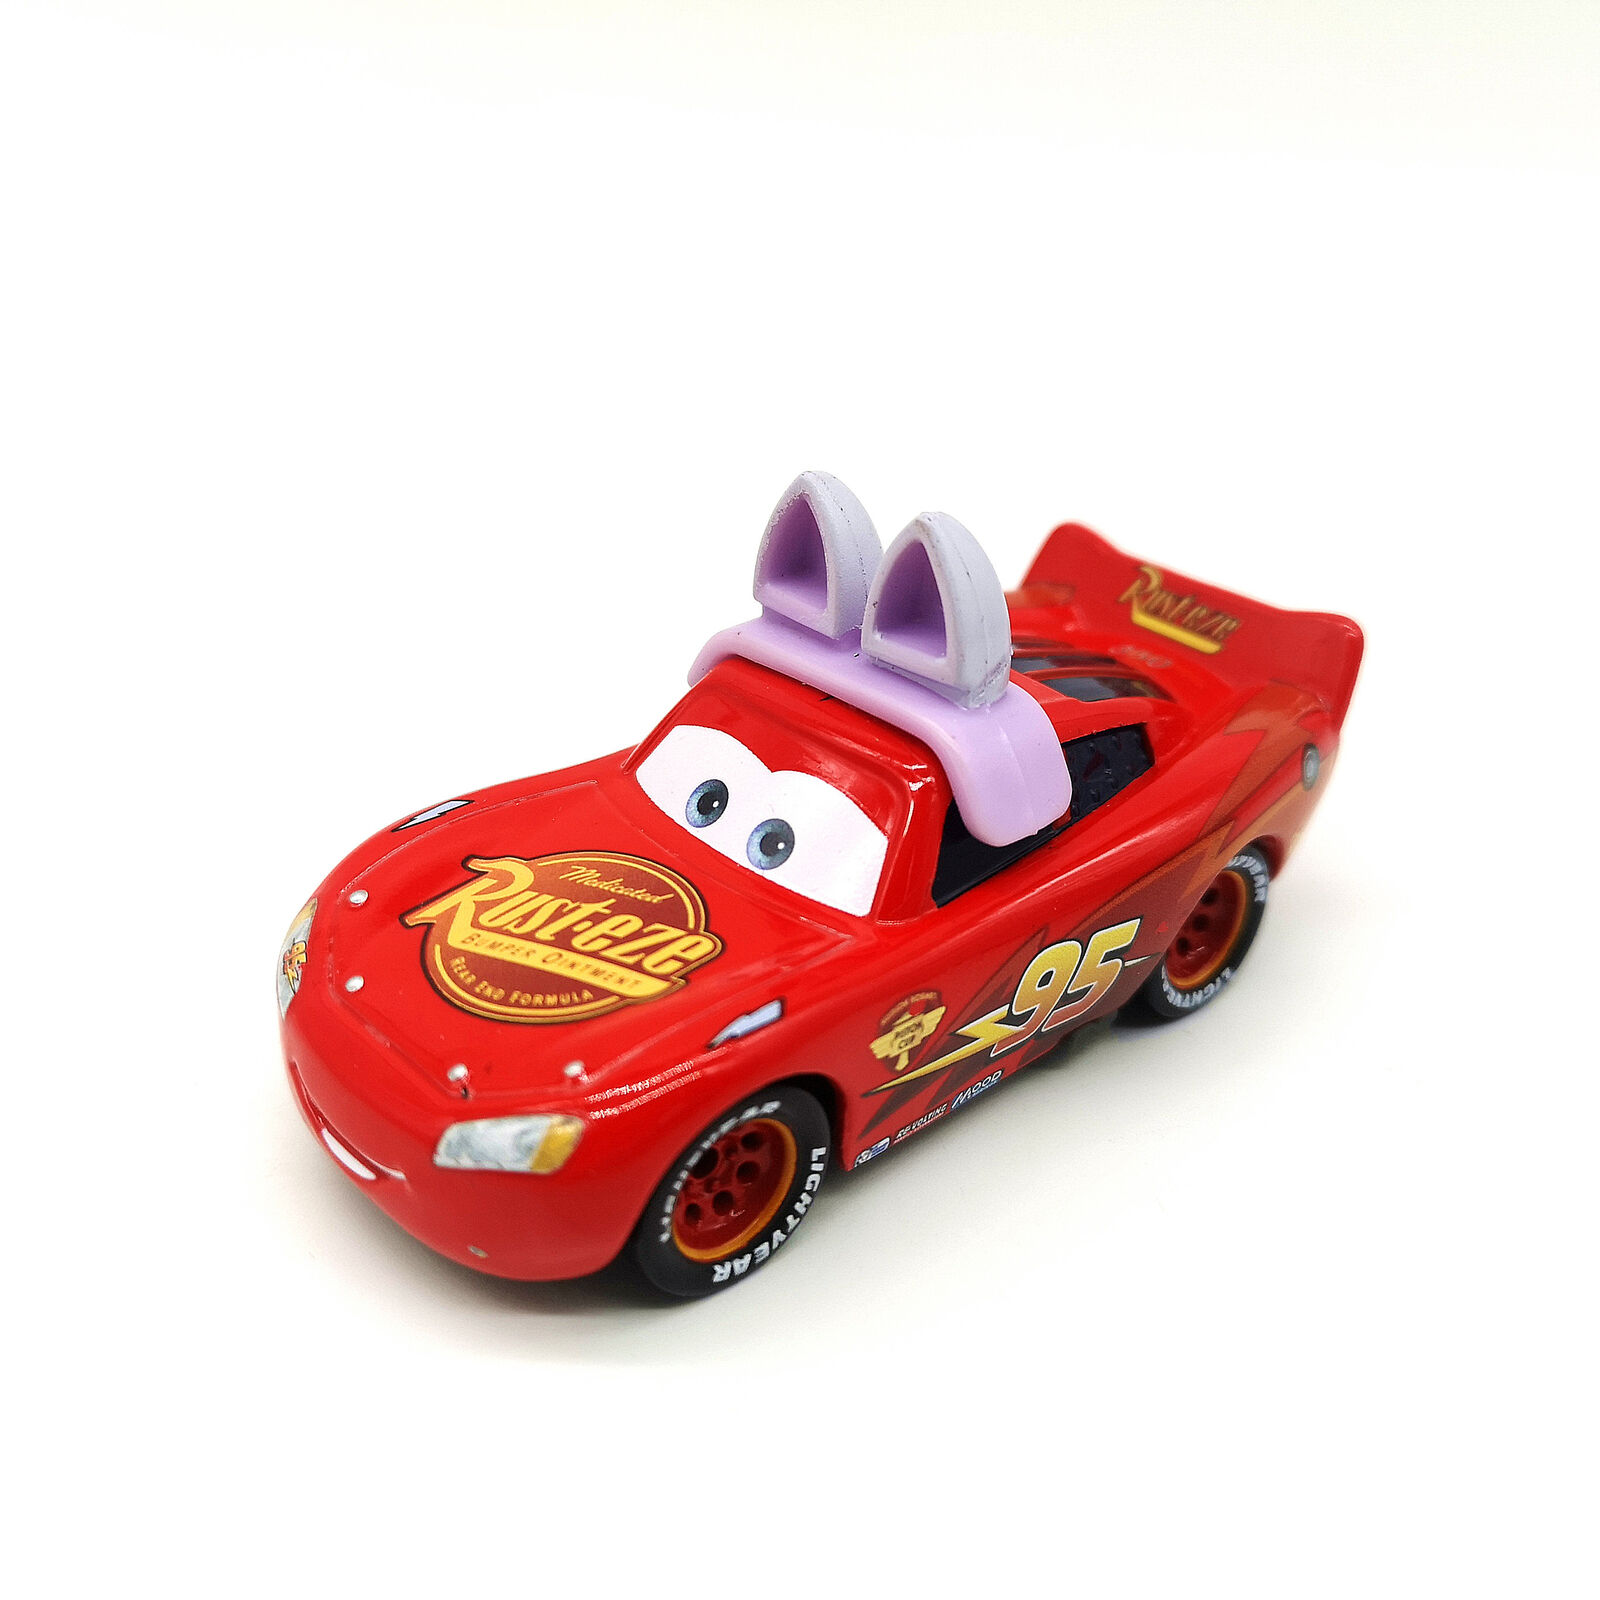 Cars 3 Bunny Lightning Mcqueen Diecast Toy Car 1 55 Loose Kids Vehicle Rare